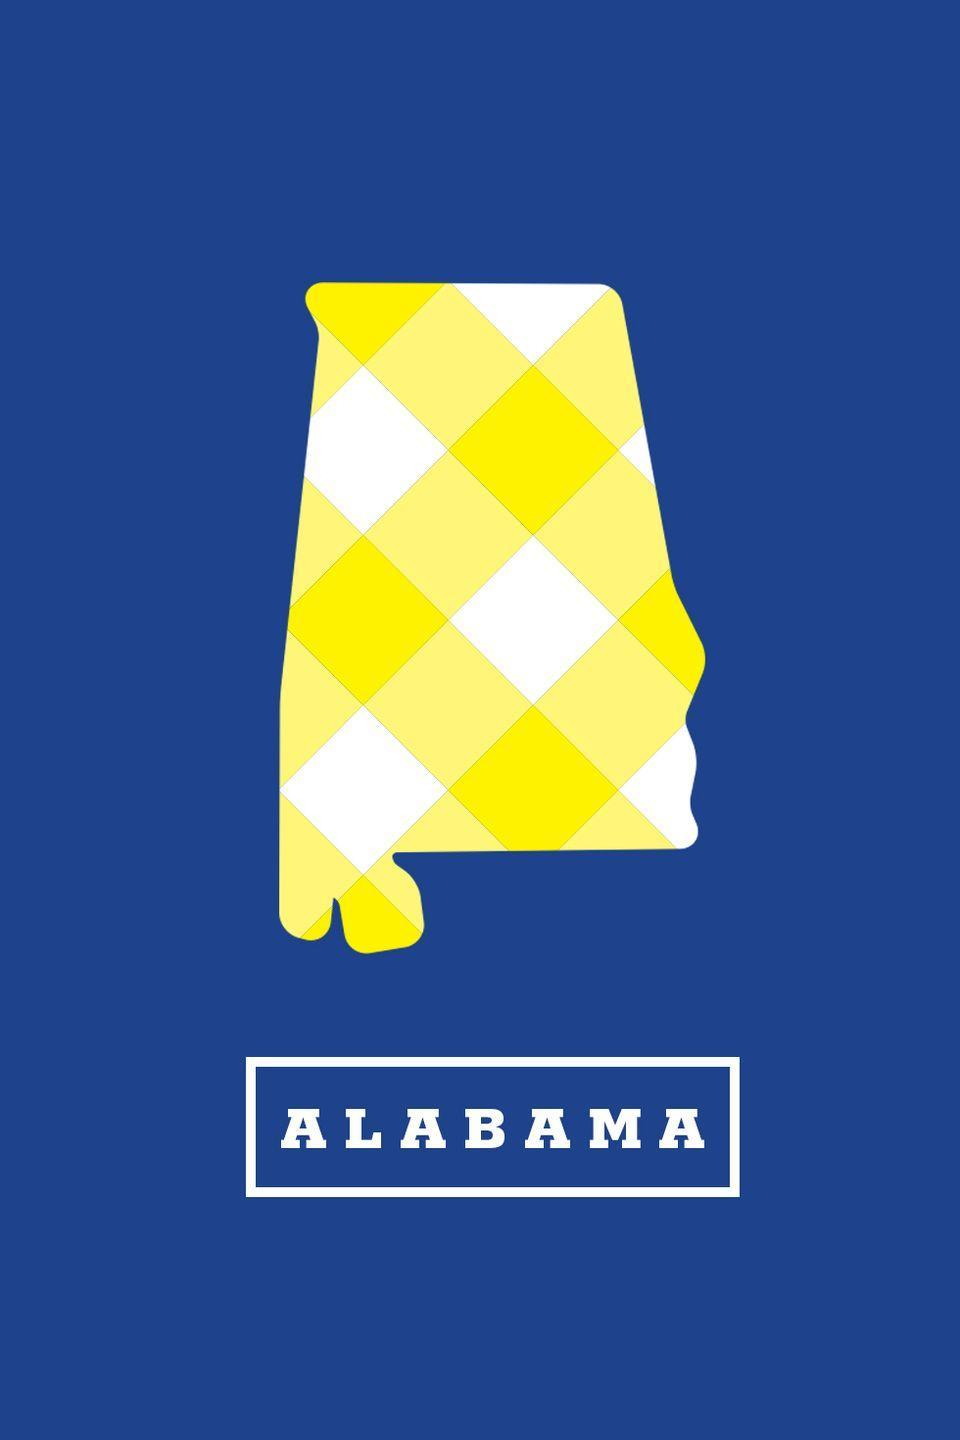 """<p>•You plan everything around college football schedules.</p><p>•You've visited the statue honoring the <a href=""""http://www.atlasobscura.com/articles/boll-weevil-monument-alabama"""" rel=""""nofollow noopener"""" target=""""_blank"""" data-ylk=""""slk:boll weevil"""" class=""""link rapid-noclick-resp"""">boll weevil</a>.</p><p>•You've eaten your barbecue with <a href=""""http://www.countryliving.com/food-drinks/a39145/you-need-to-know-about-alabama-white-sauce/"""" rel=""""nofollow noopener"""" target=""""_blank"""" data-ylk=""""slk:white sauce"""" class=""""link rapid-noclick-resp"""">white sauce</a> at some point.</p>"""